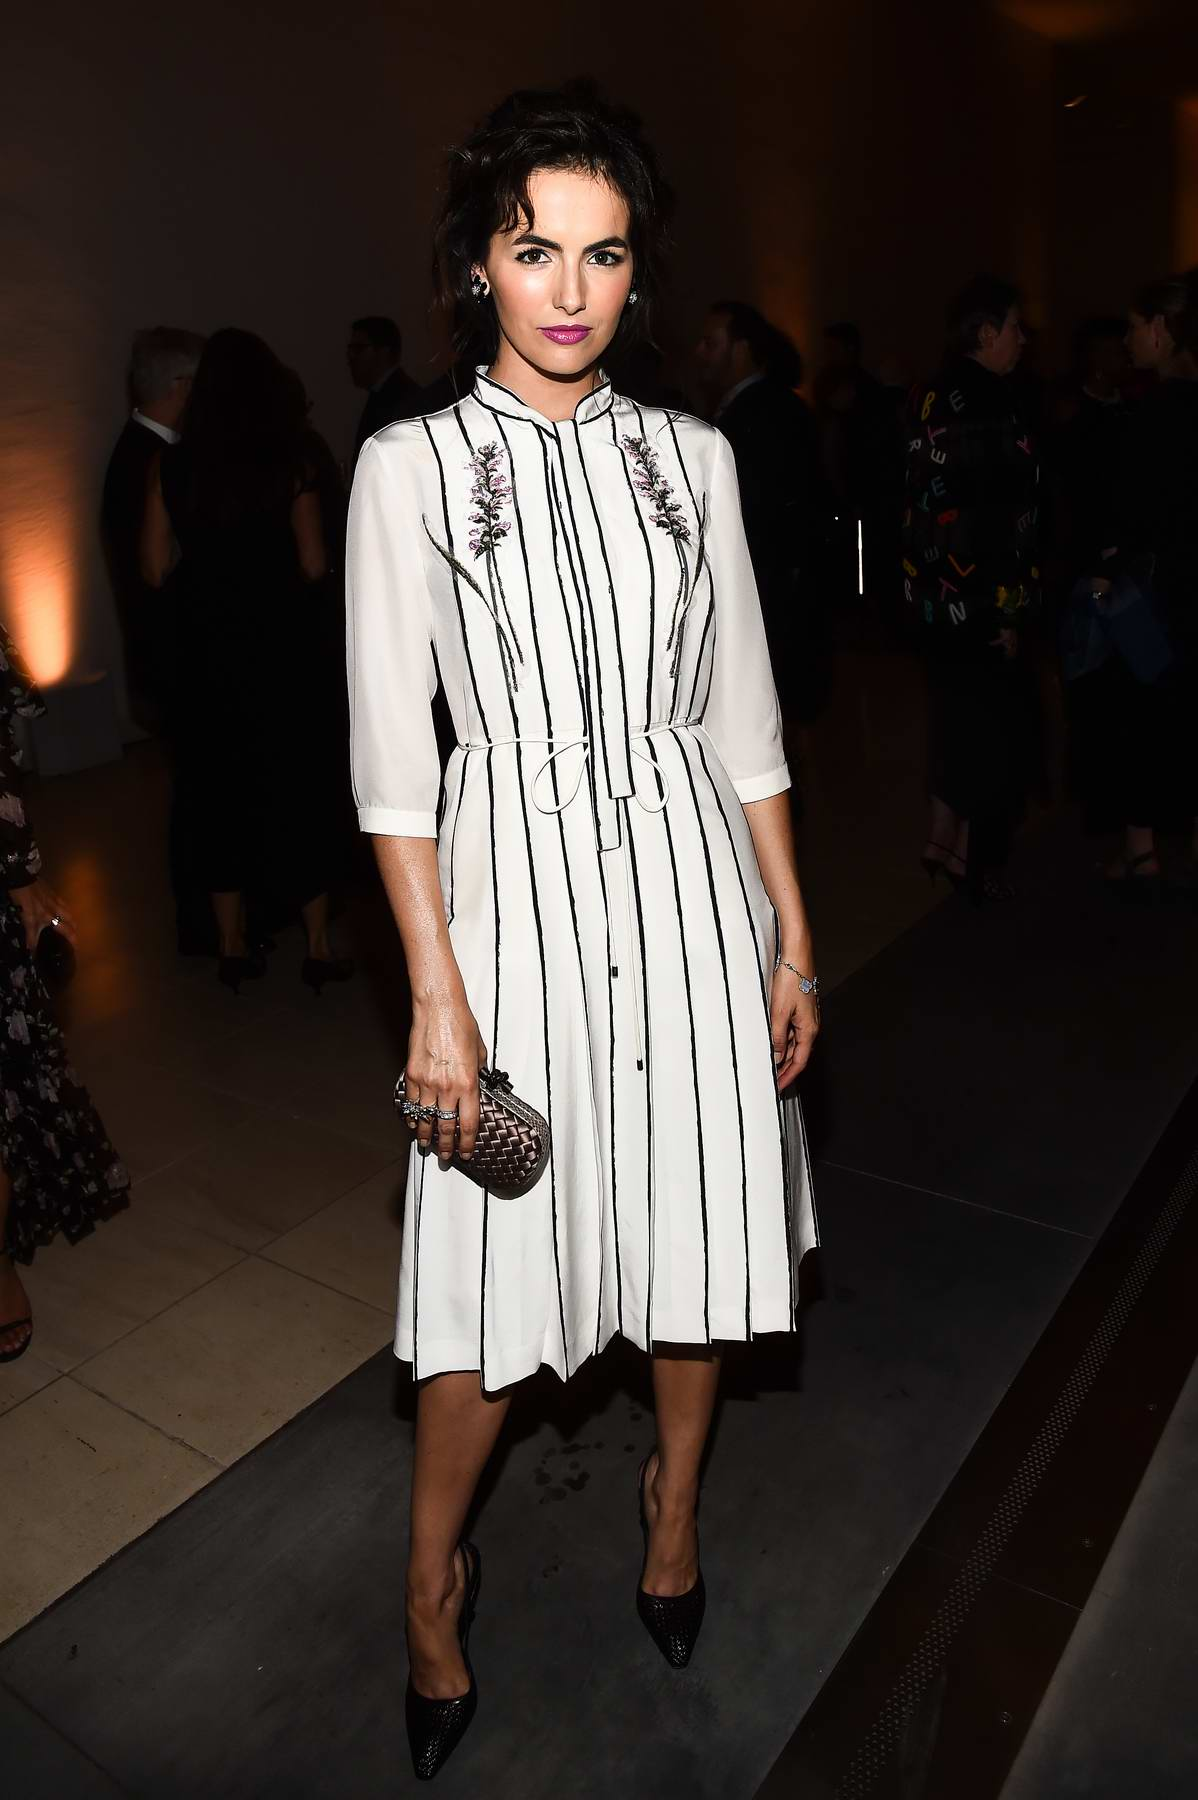 Camilla Belle at Hammer Museum Gala in the Garden honoring Ava Duvernay held at the Hammer Museum in Los Angeles